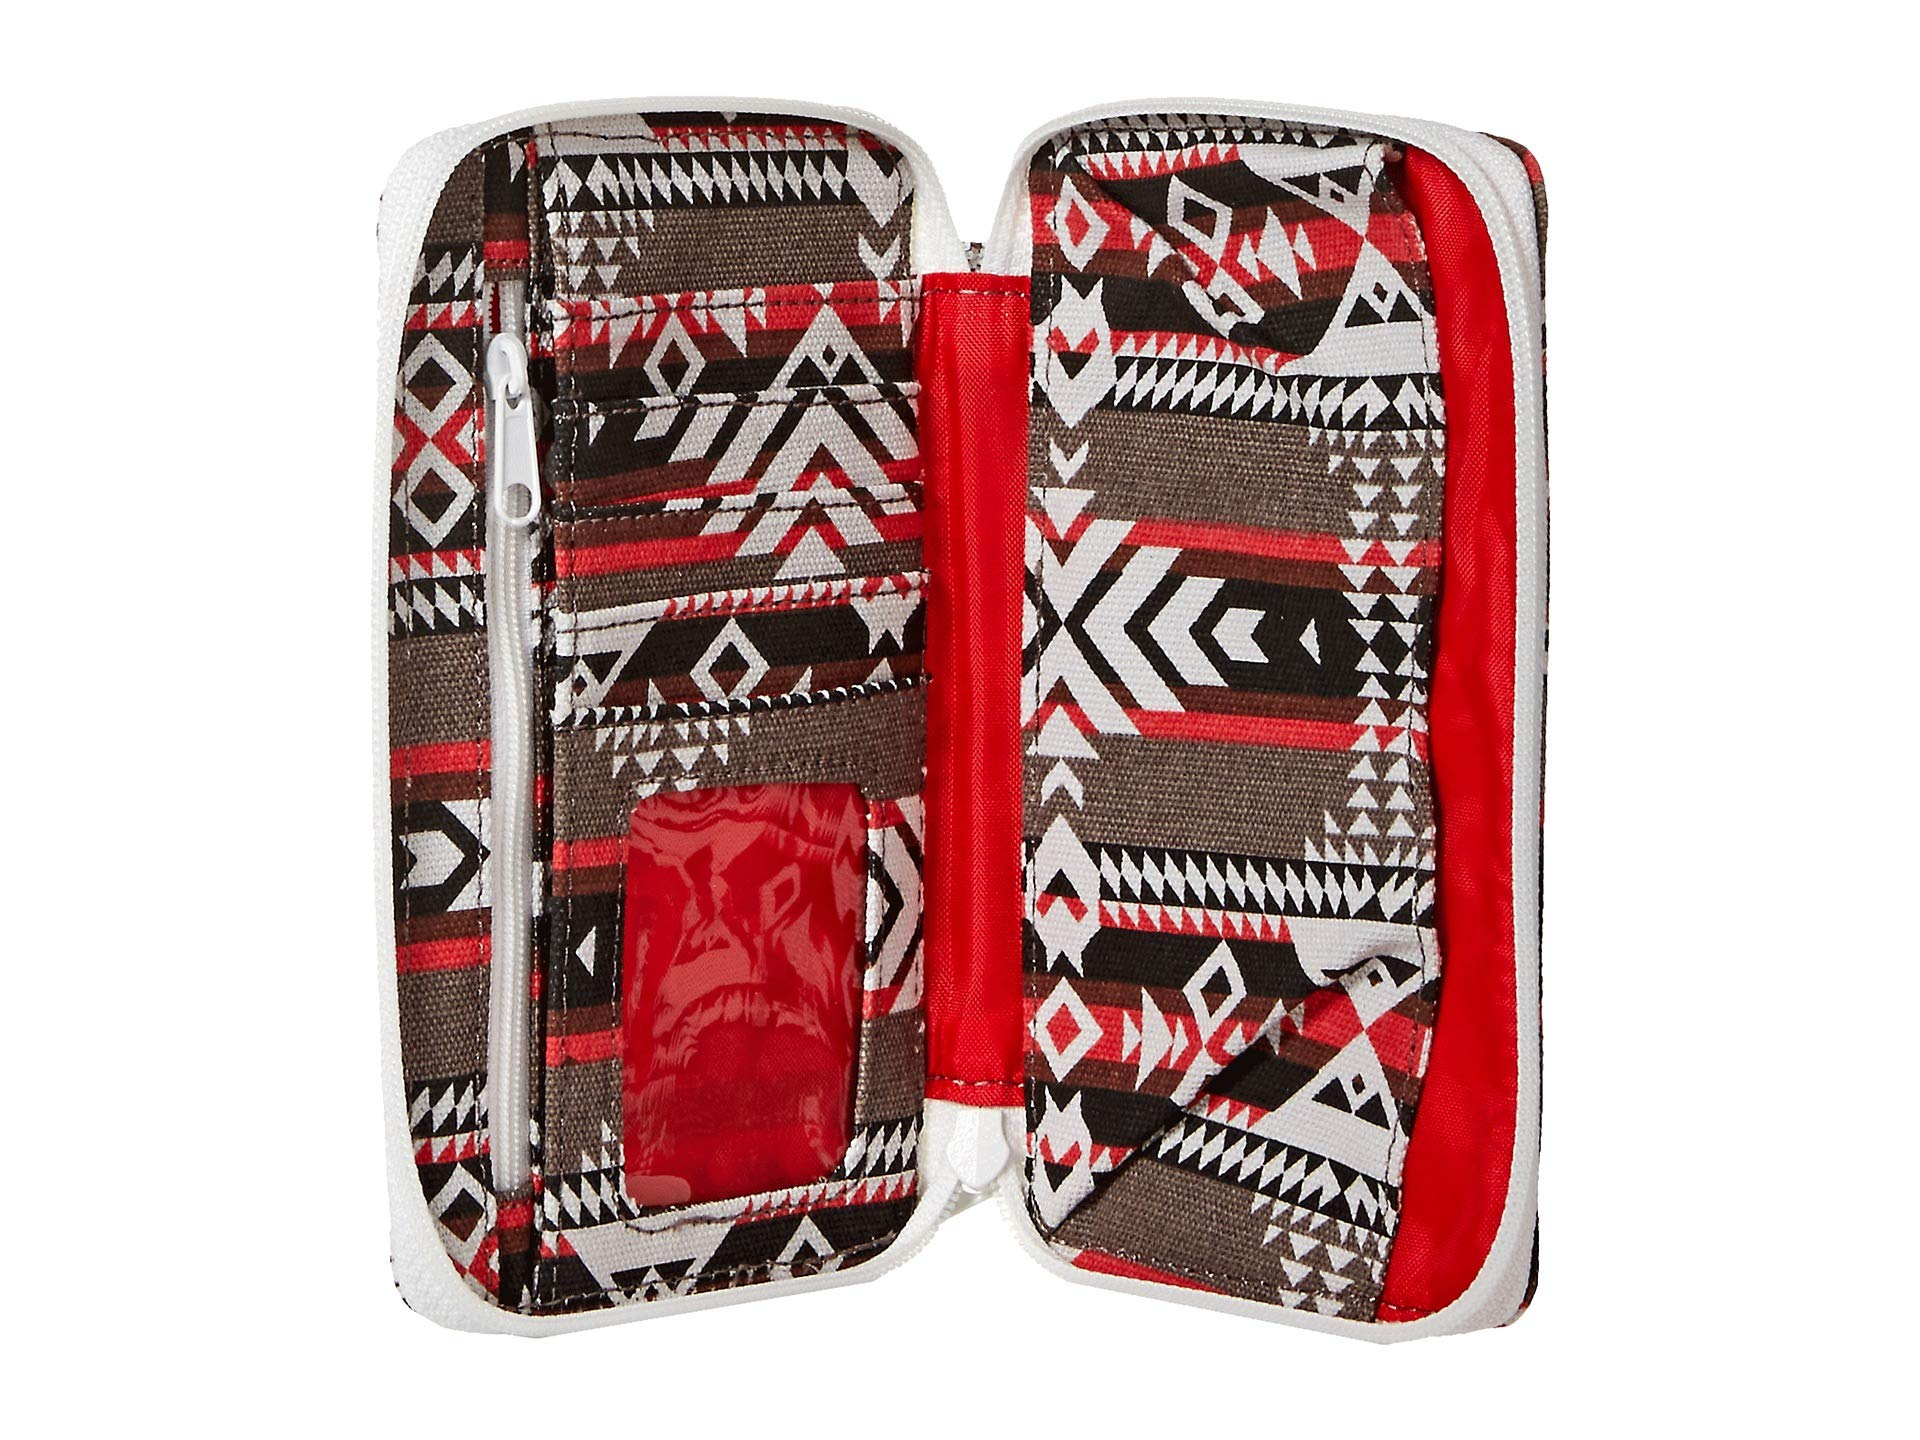 Blanket Kavu Time Go Time Canyon Blanket Kavu Go Time Go Kavu Canyon Canyon 7wBqp